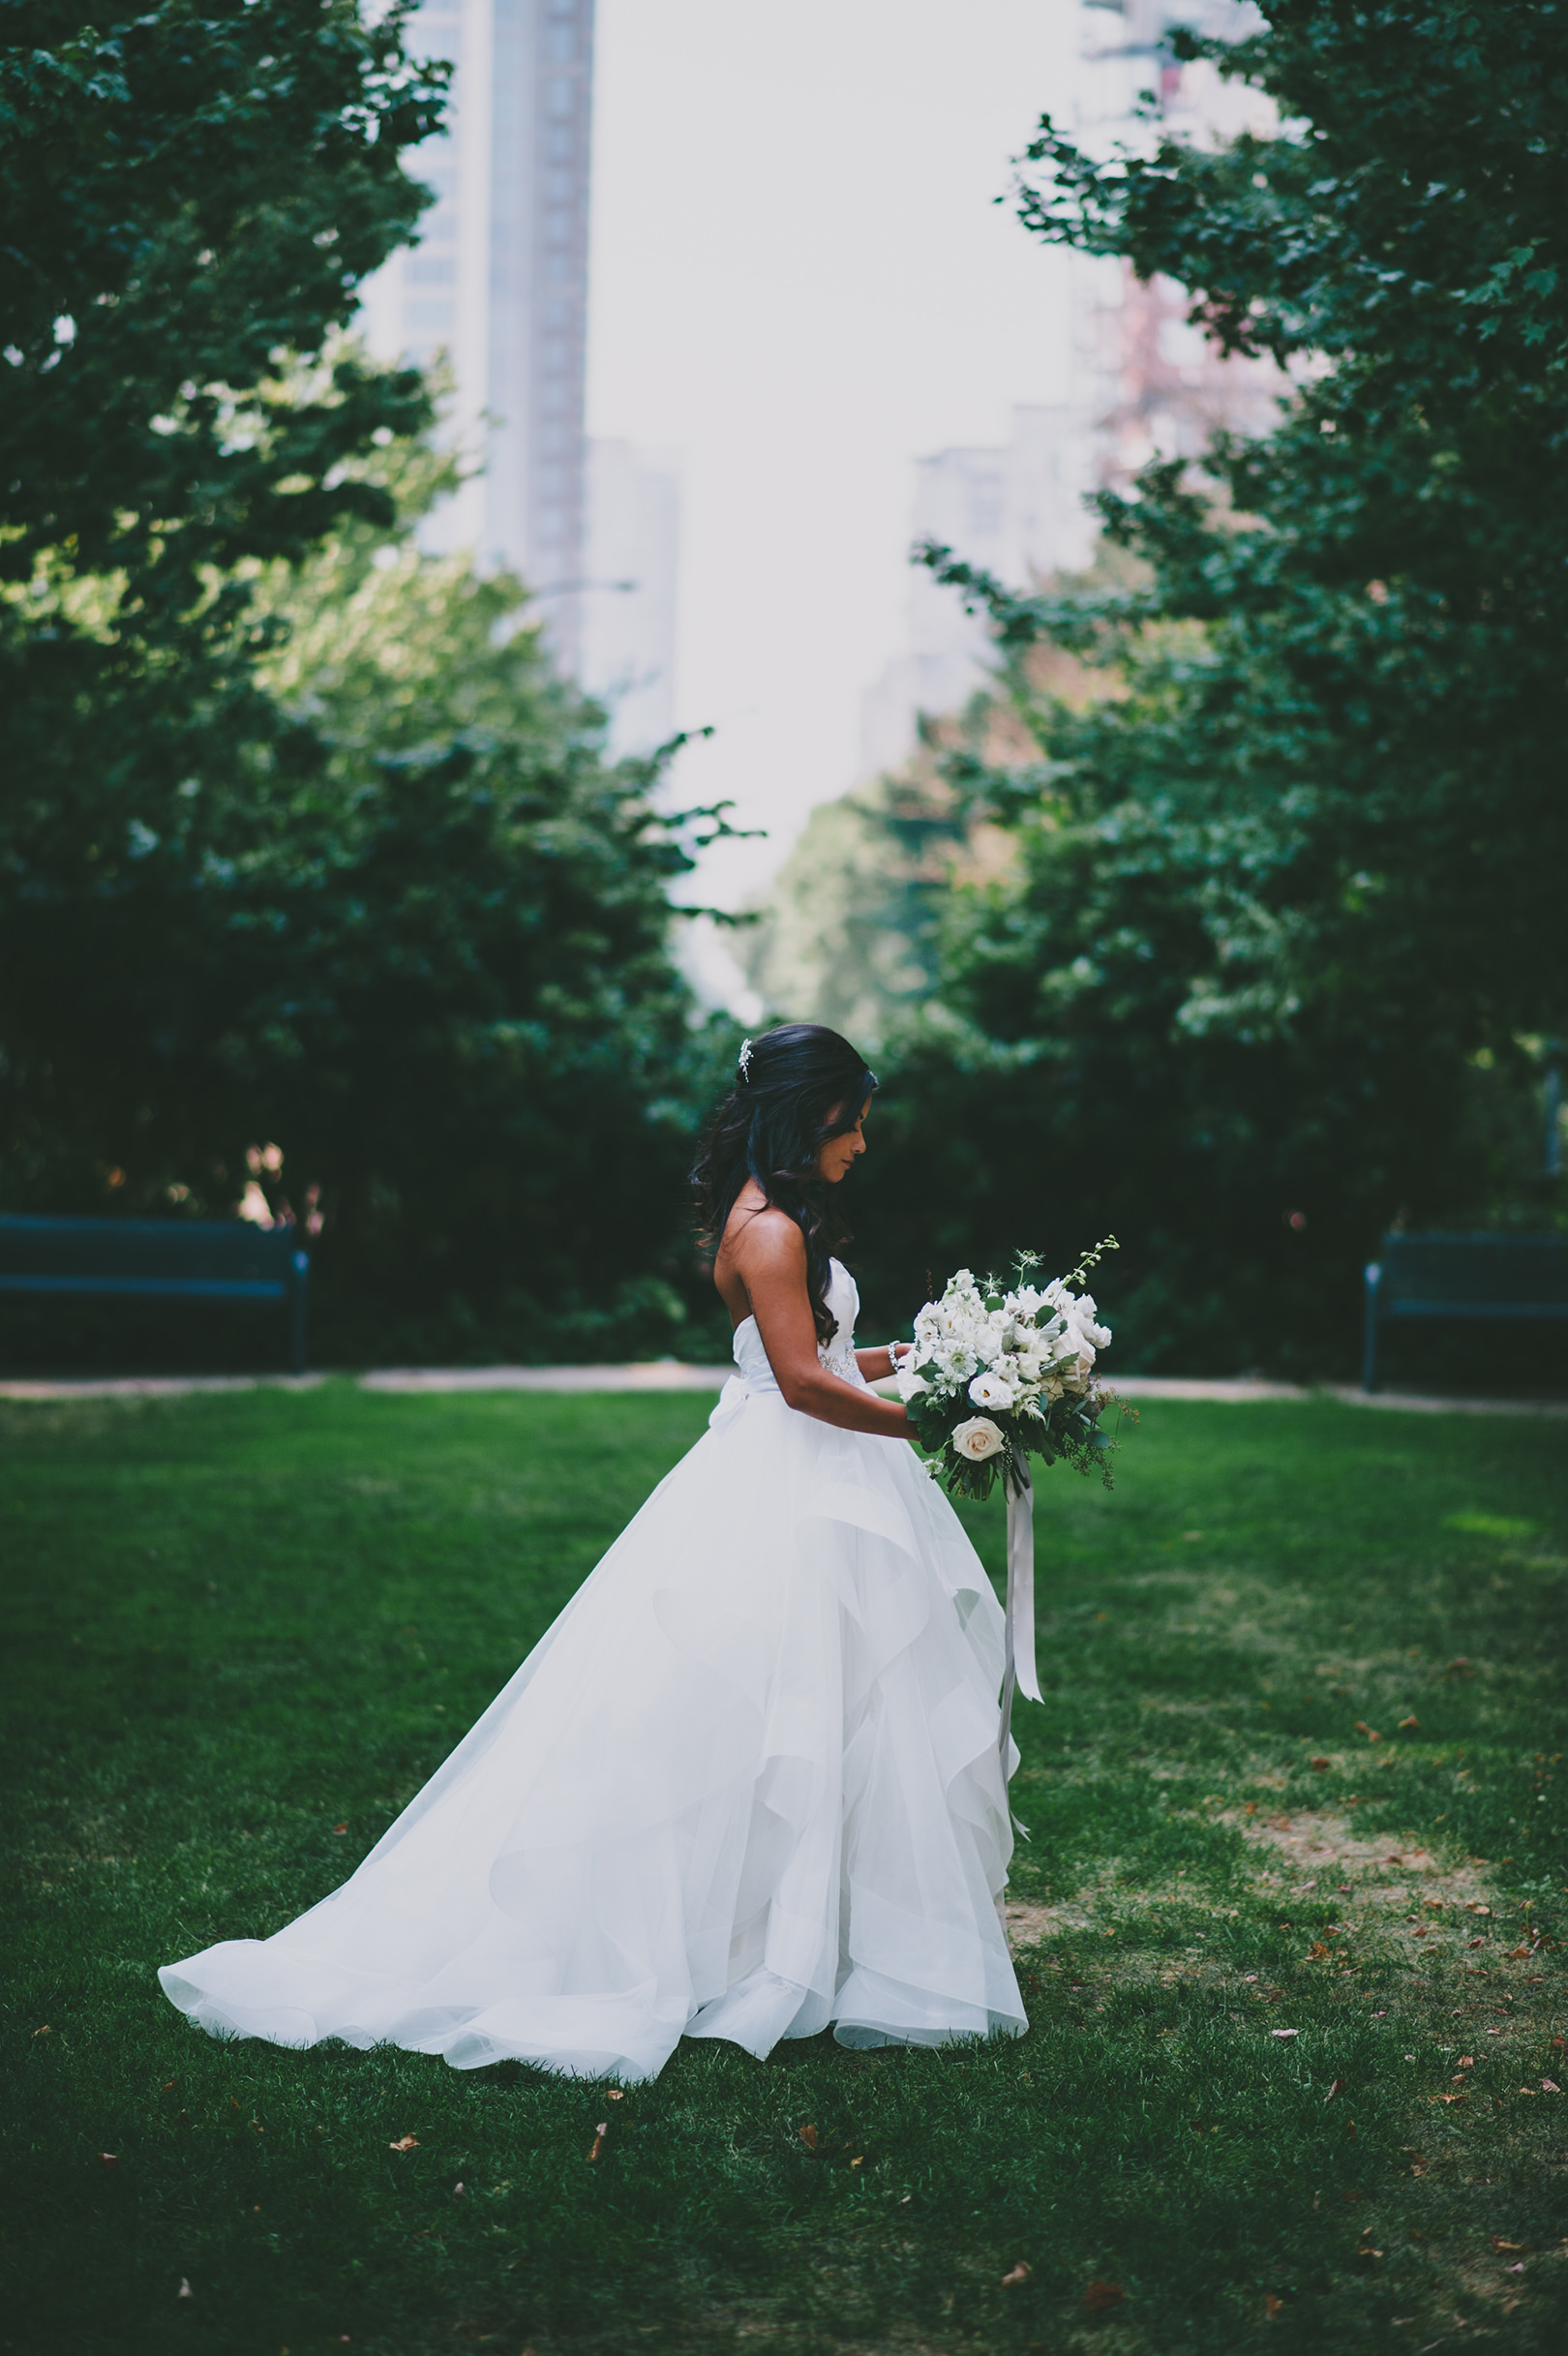 Spain Wedding Photographer - © Dallas Kolotylo Photography - 056